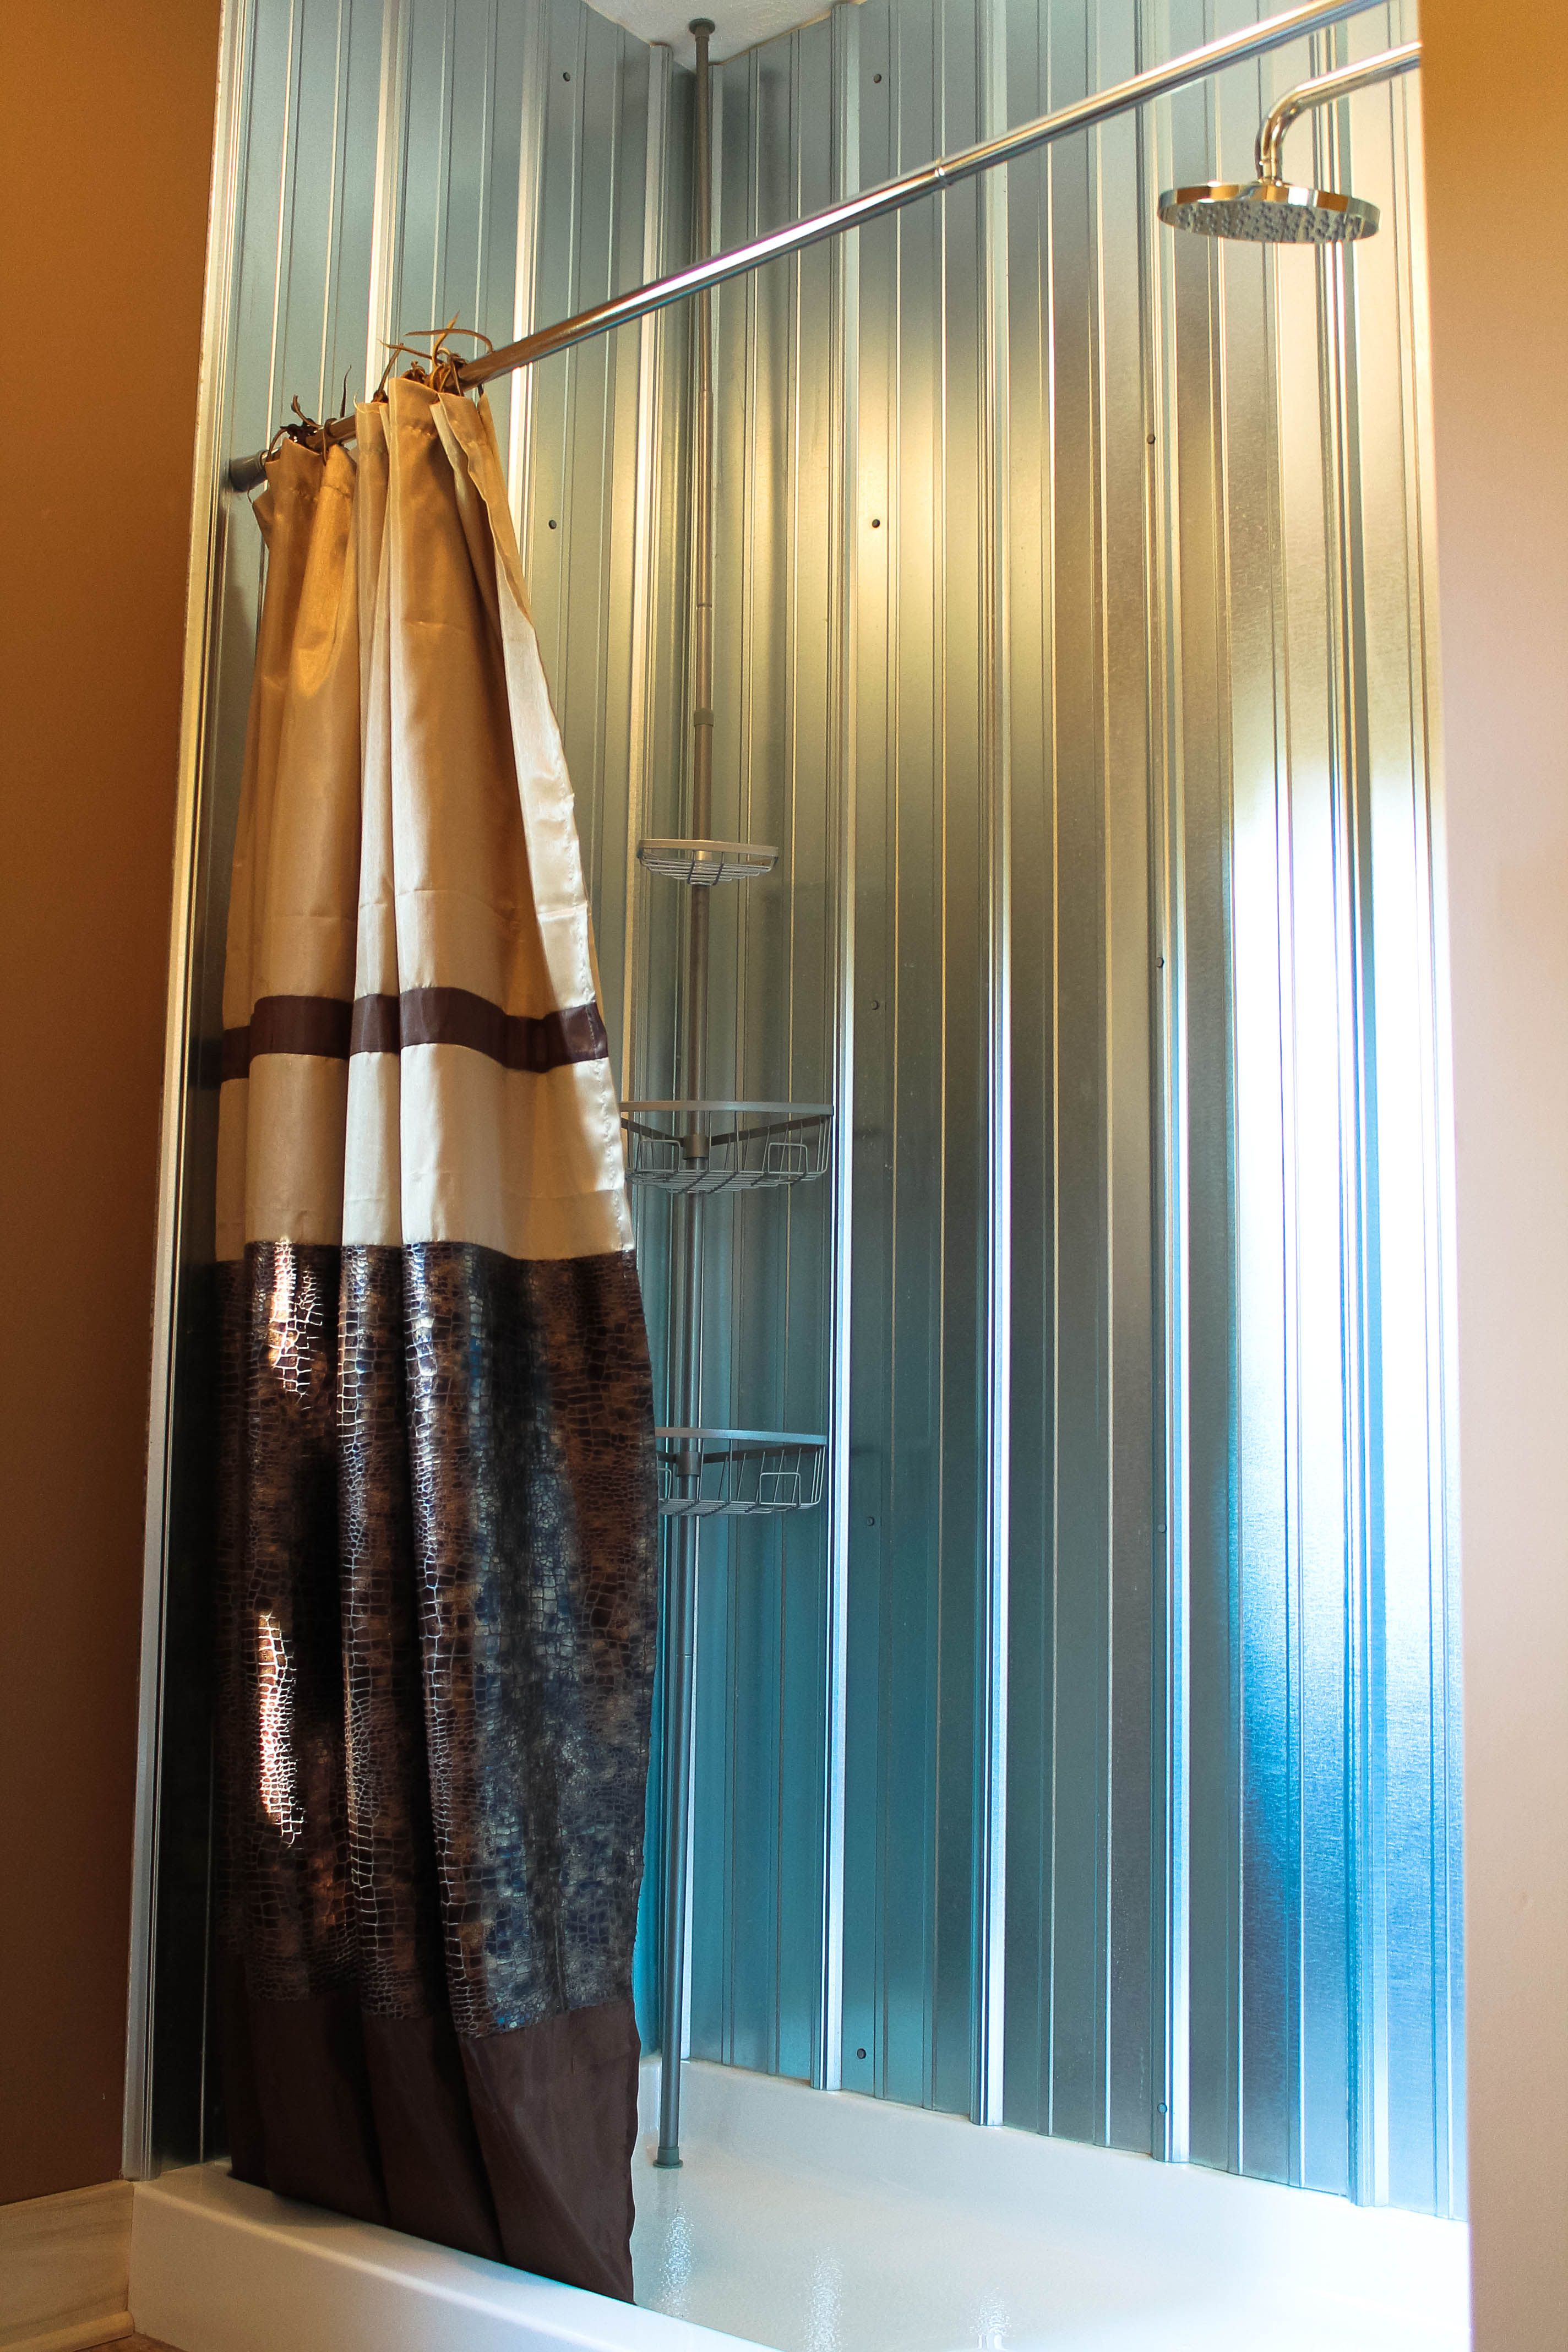 Galvanized Metal Shower Walls Made Of Barn Siding With A Rain Head